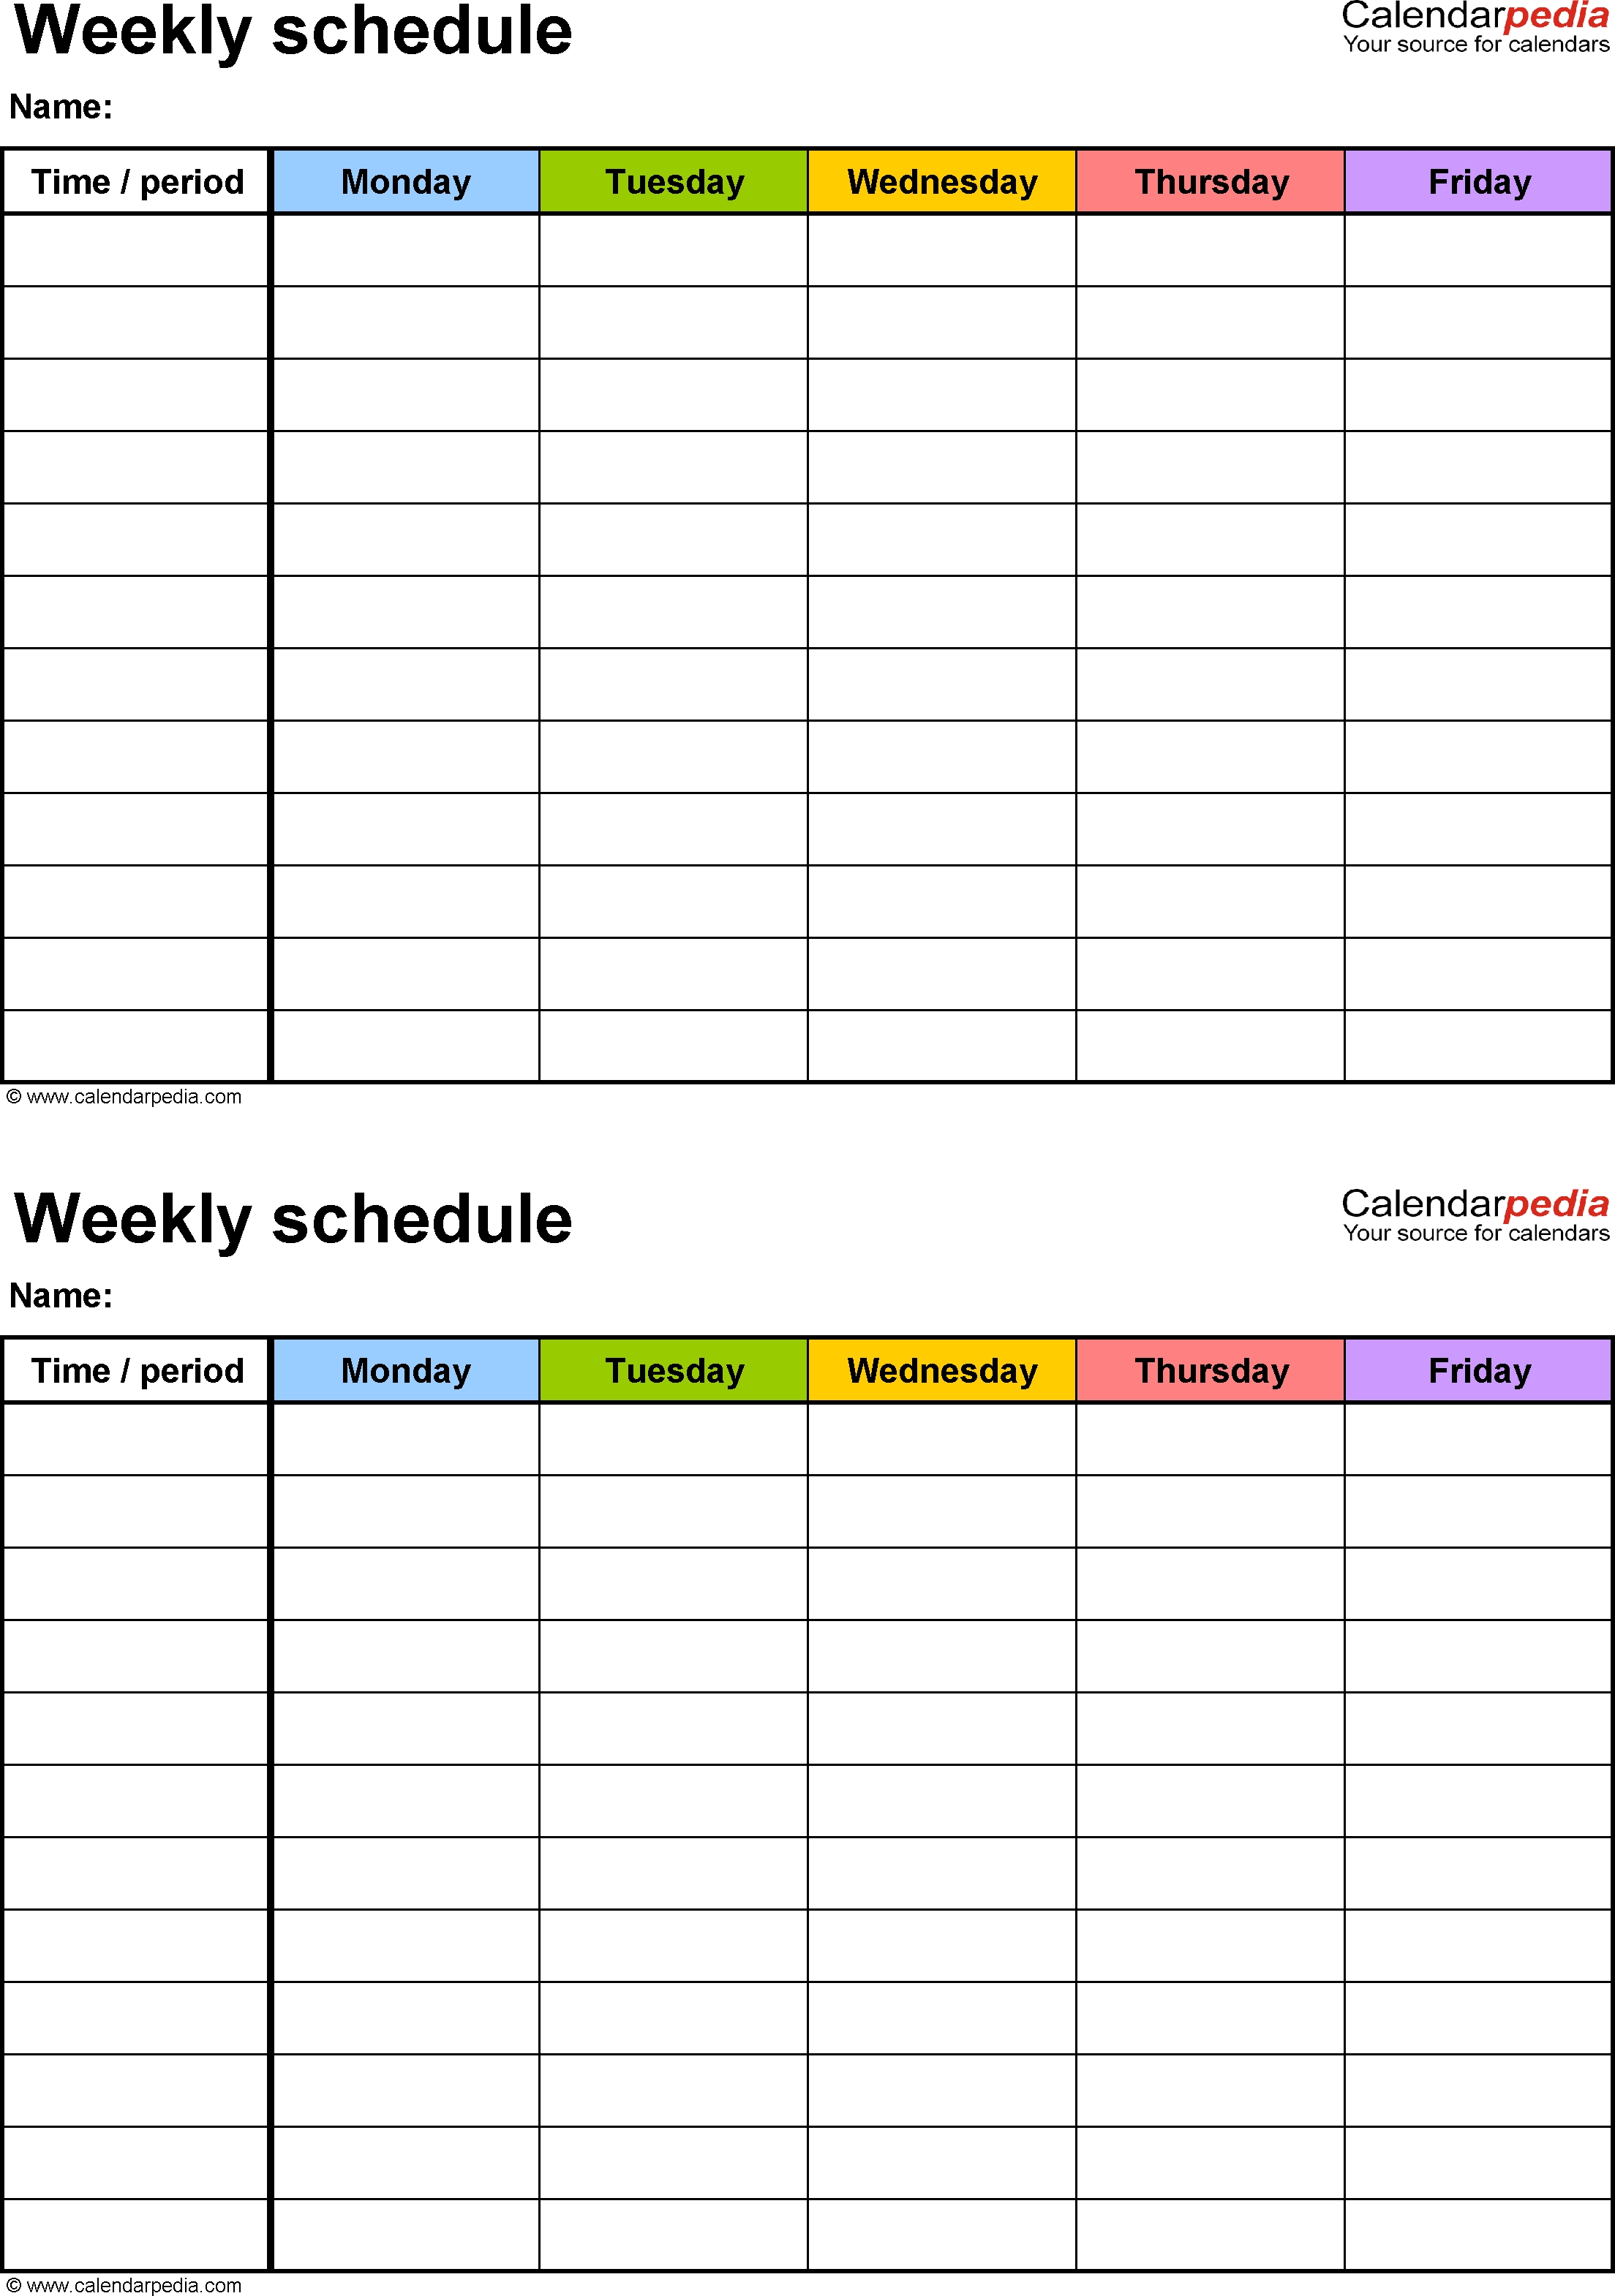 Free Weekly Schedule Templates For Word - 18 Templates in 7 Day Week Free Schedule Template